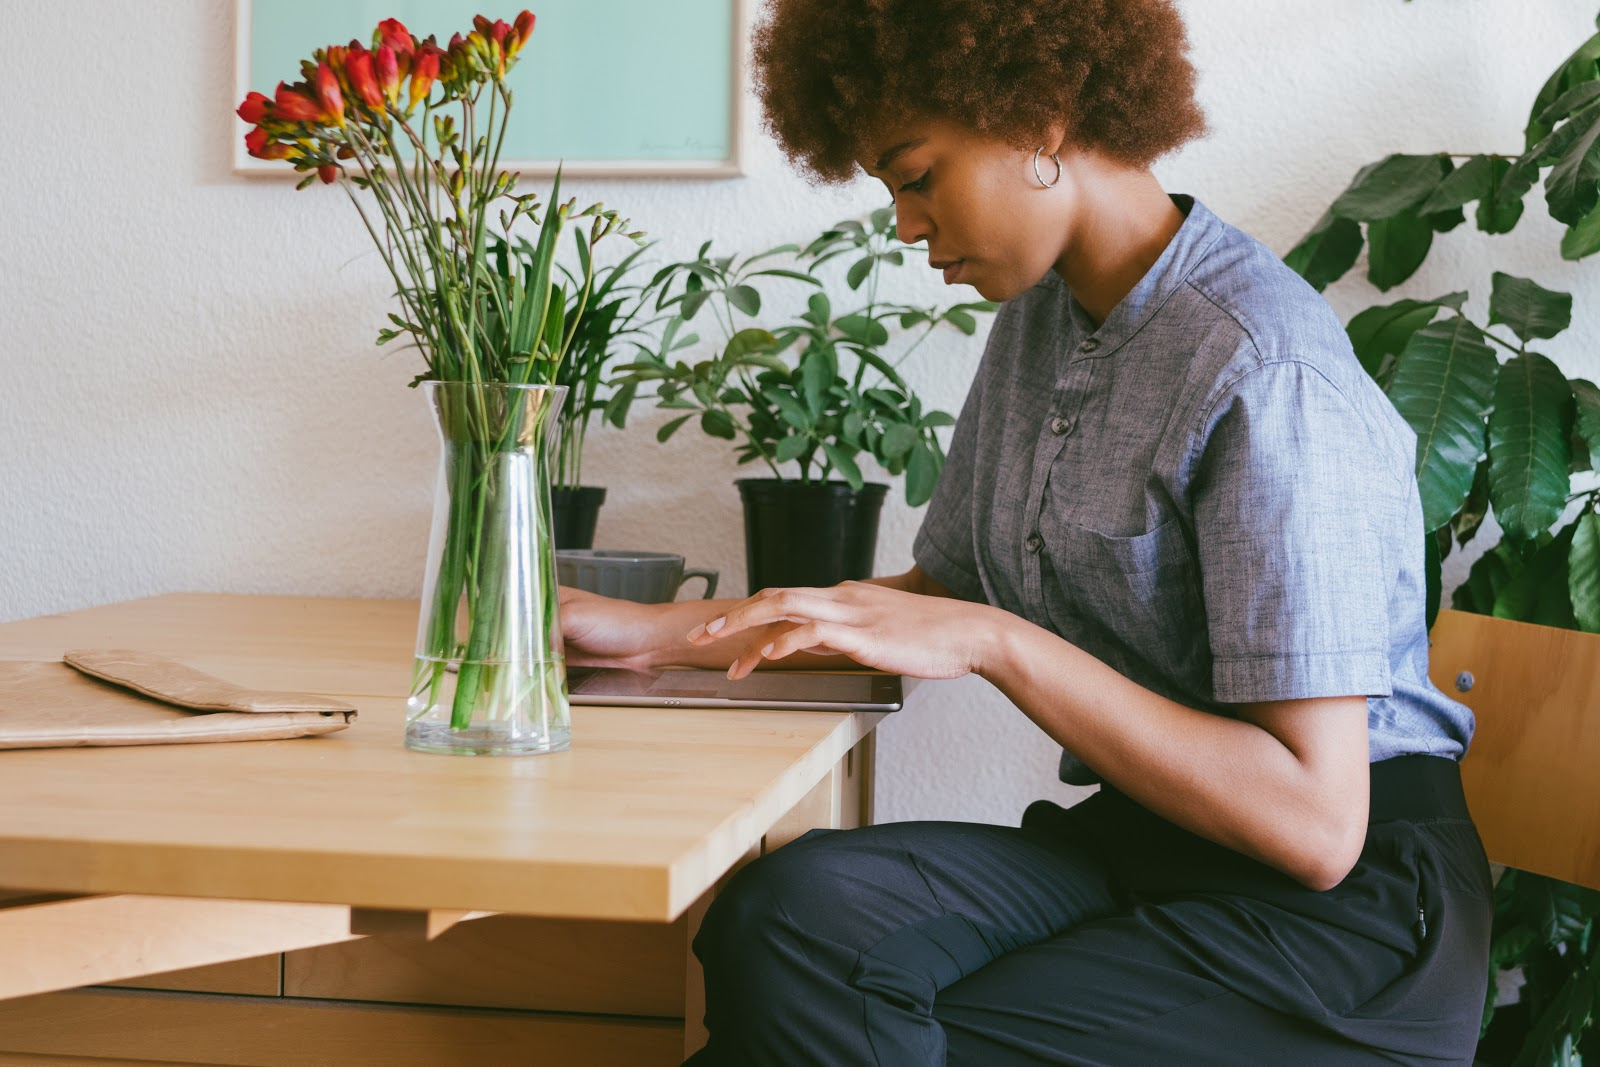 A woman surrounded by plants works on her laptop in her apartment.